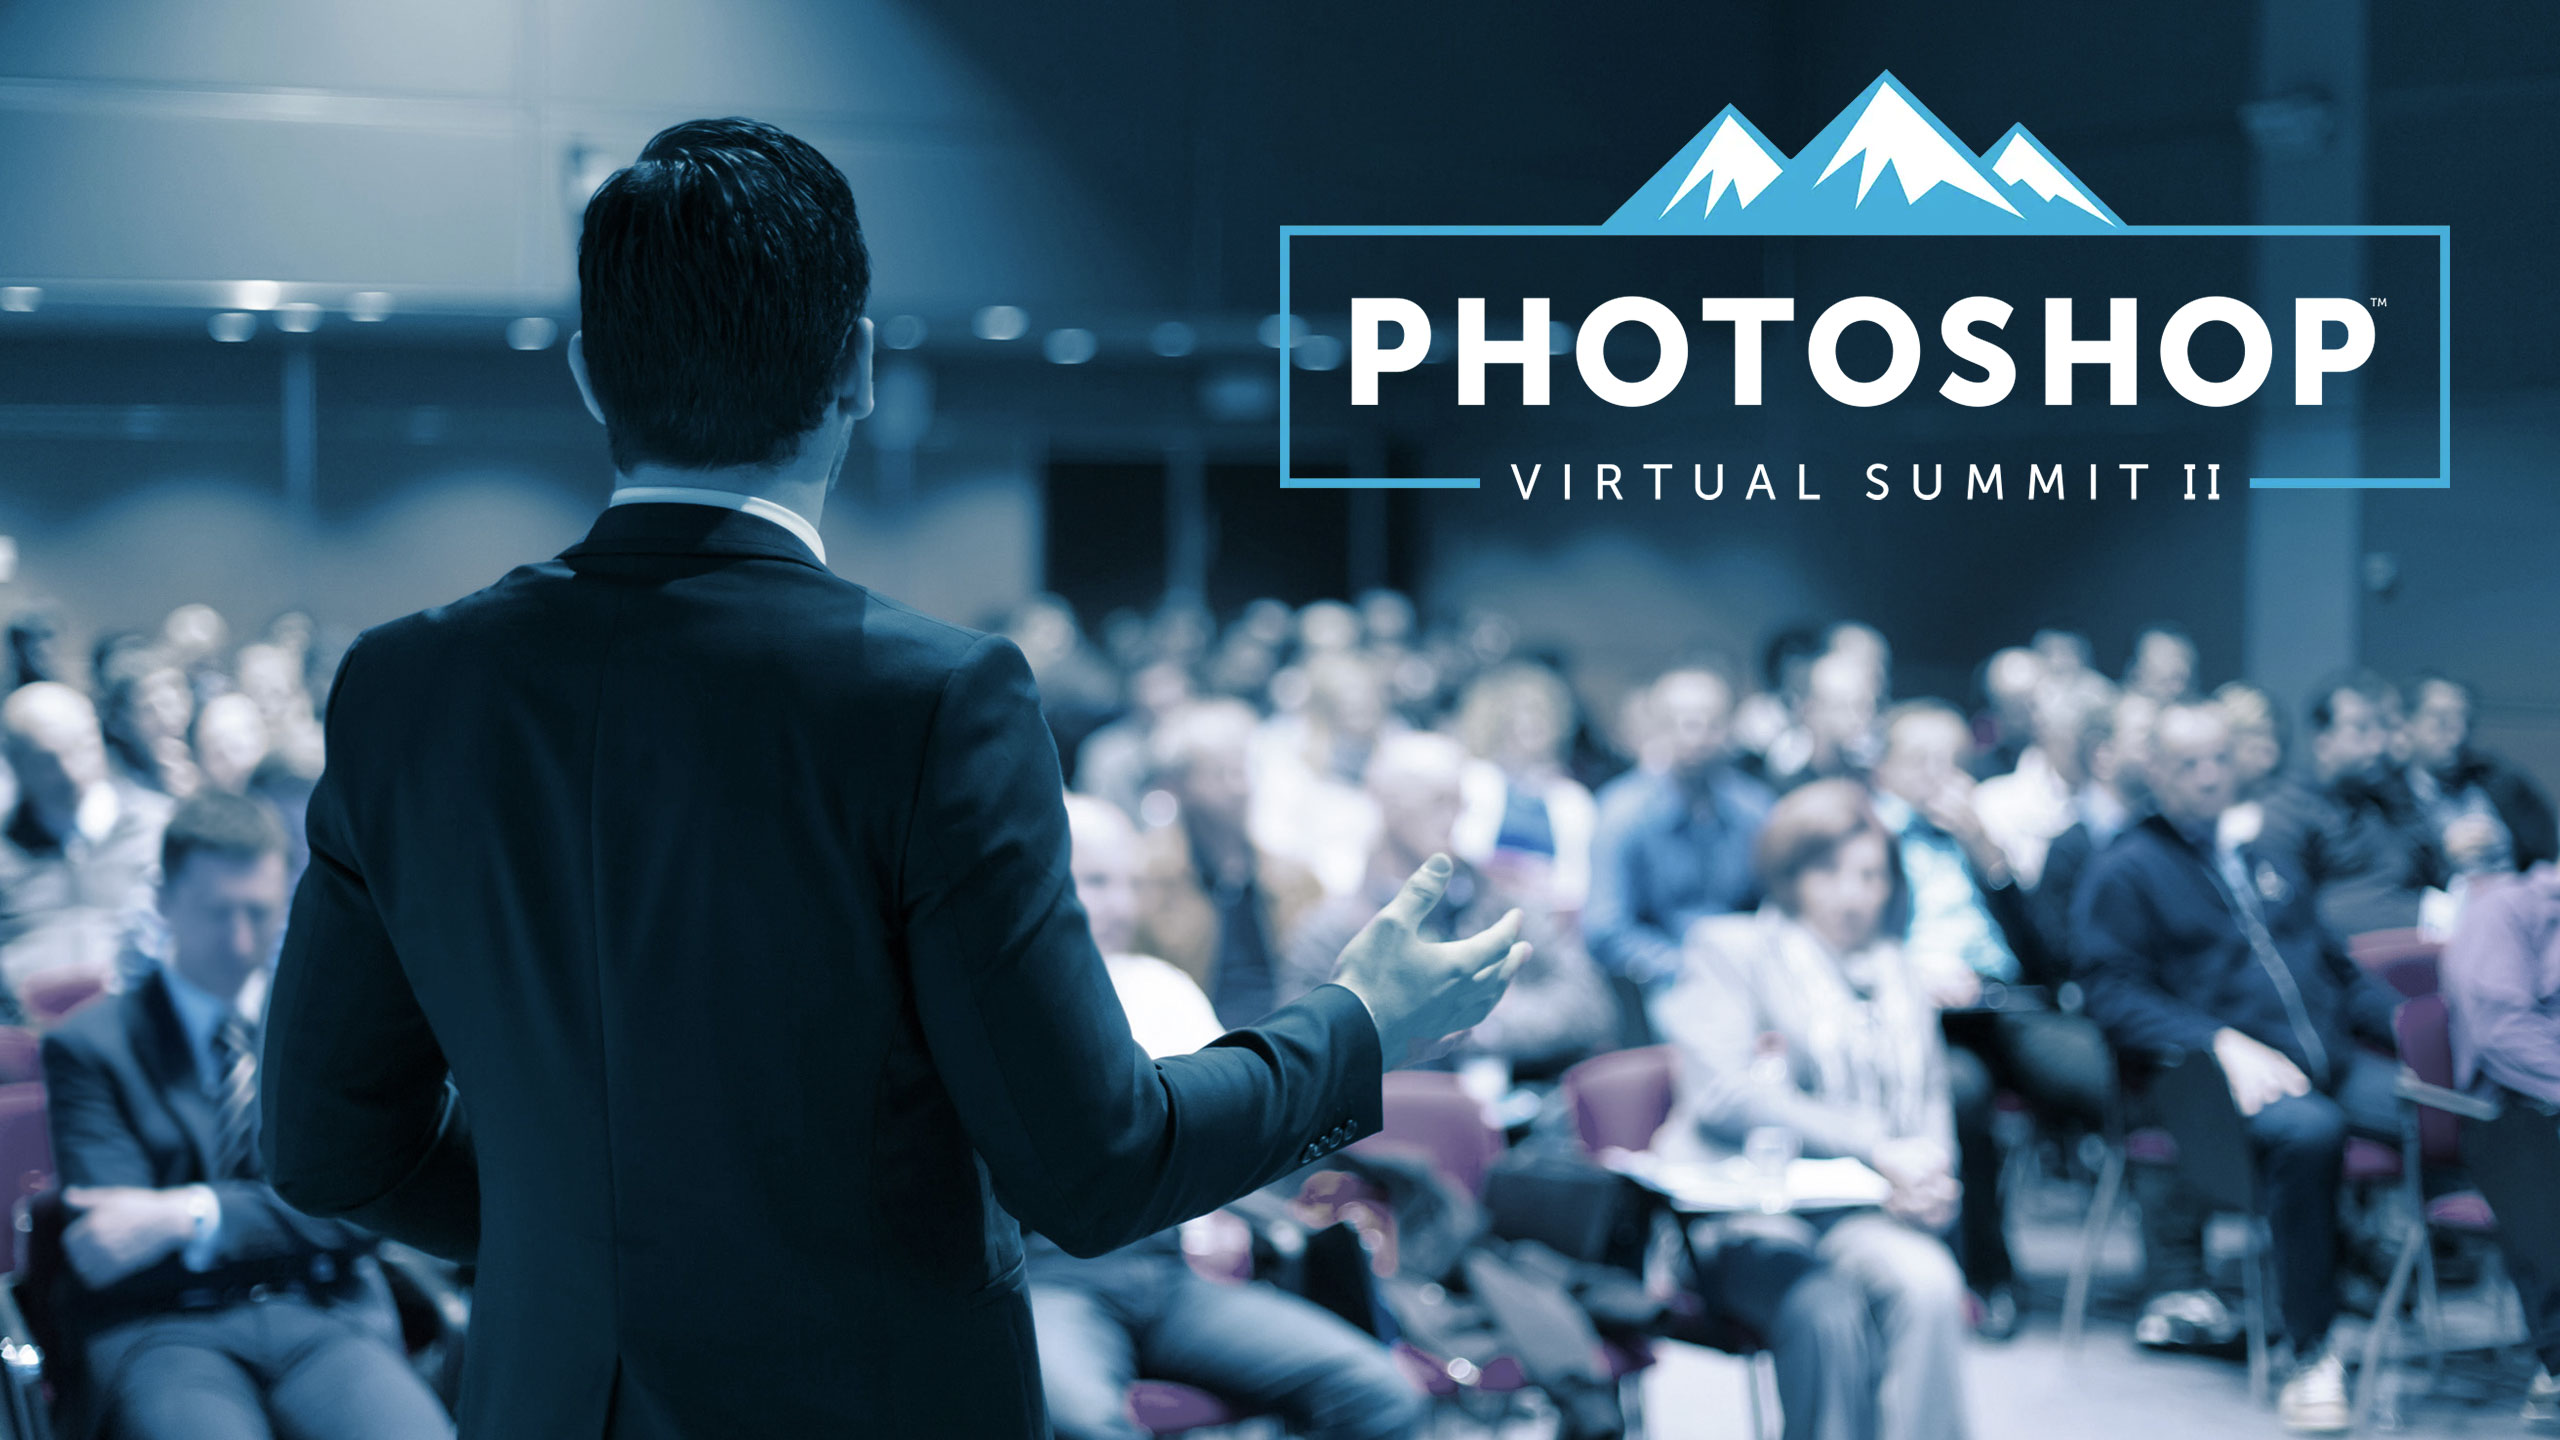 Enter to win a VIP Access pass to the Photoshop Summit II!